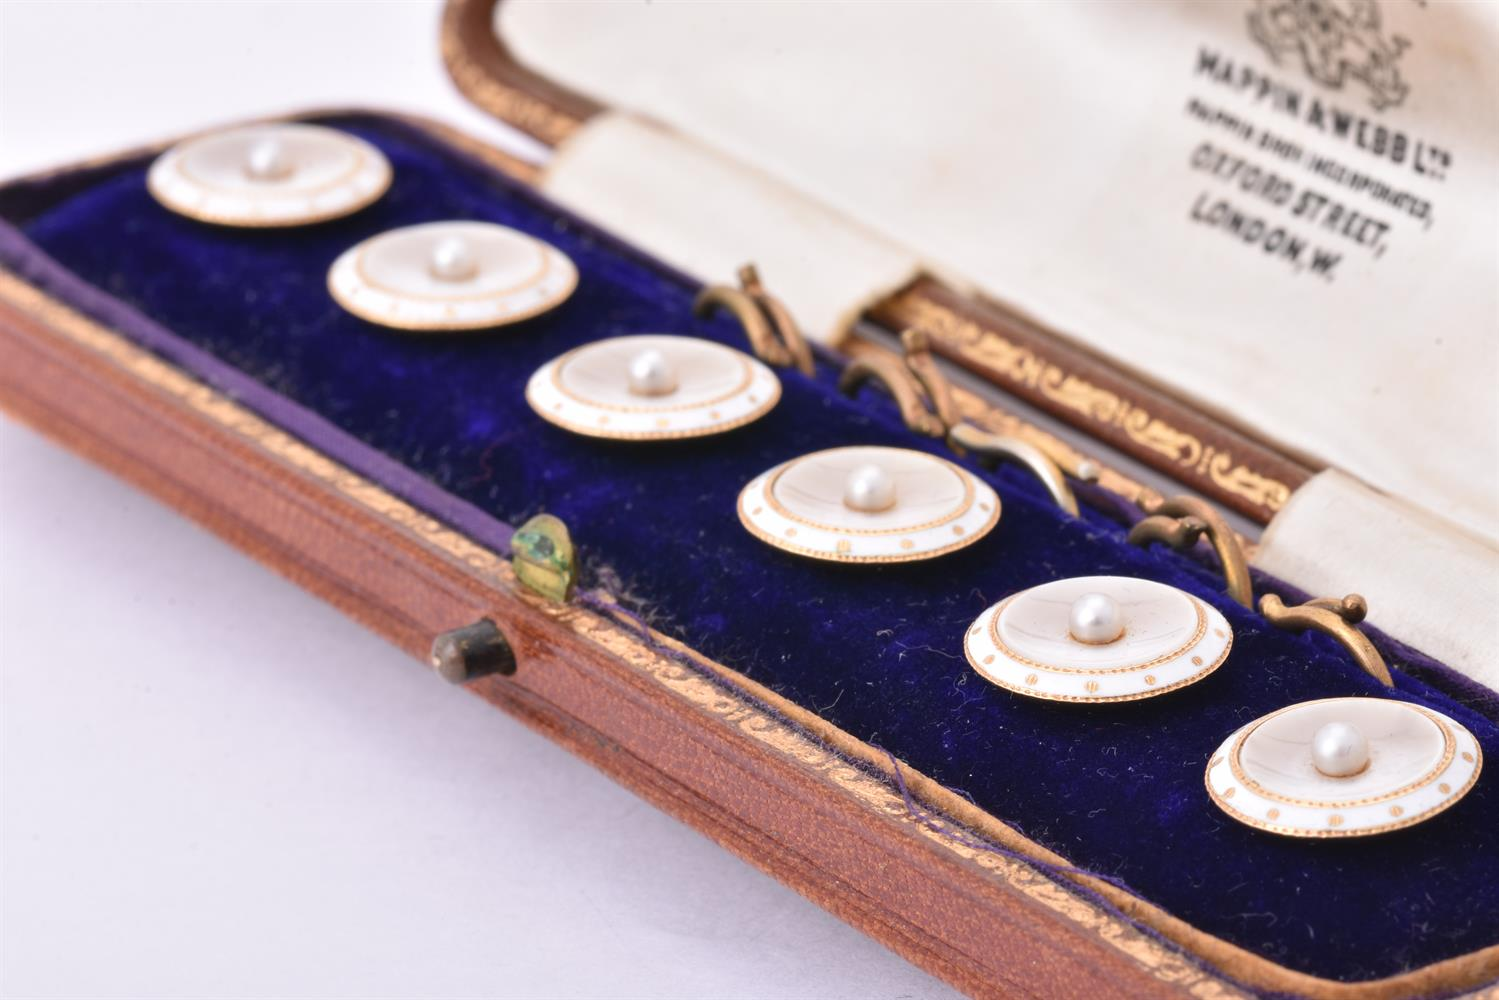 Y A pair of early 20th century mother of pearl and pearl cufflinks and six cased buttons - Image 2 of 3